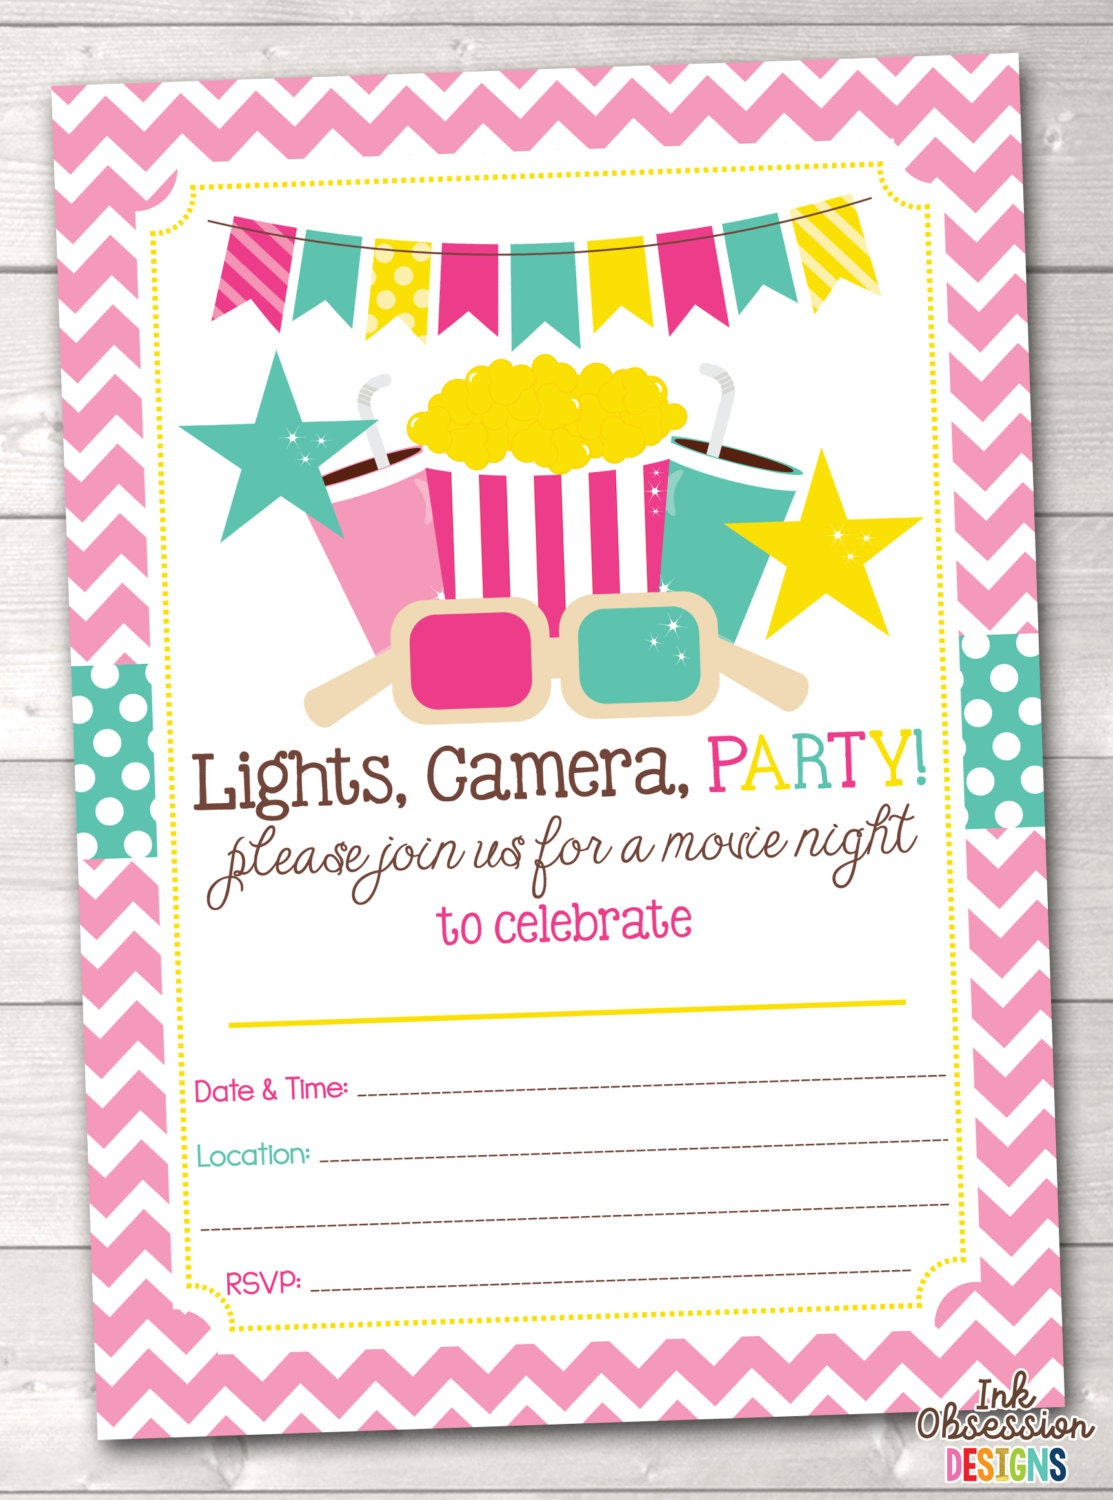 It is an image of Obsessed Printable Party Invites